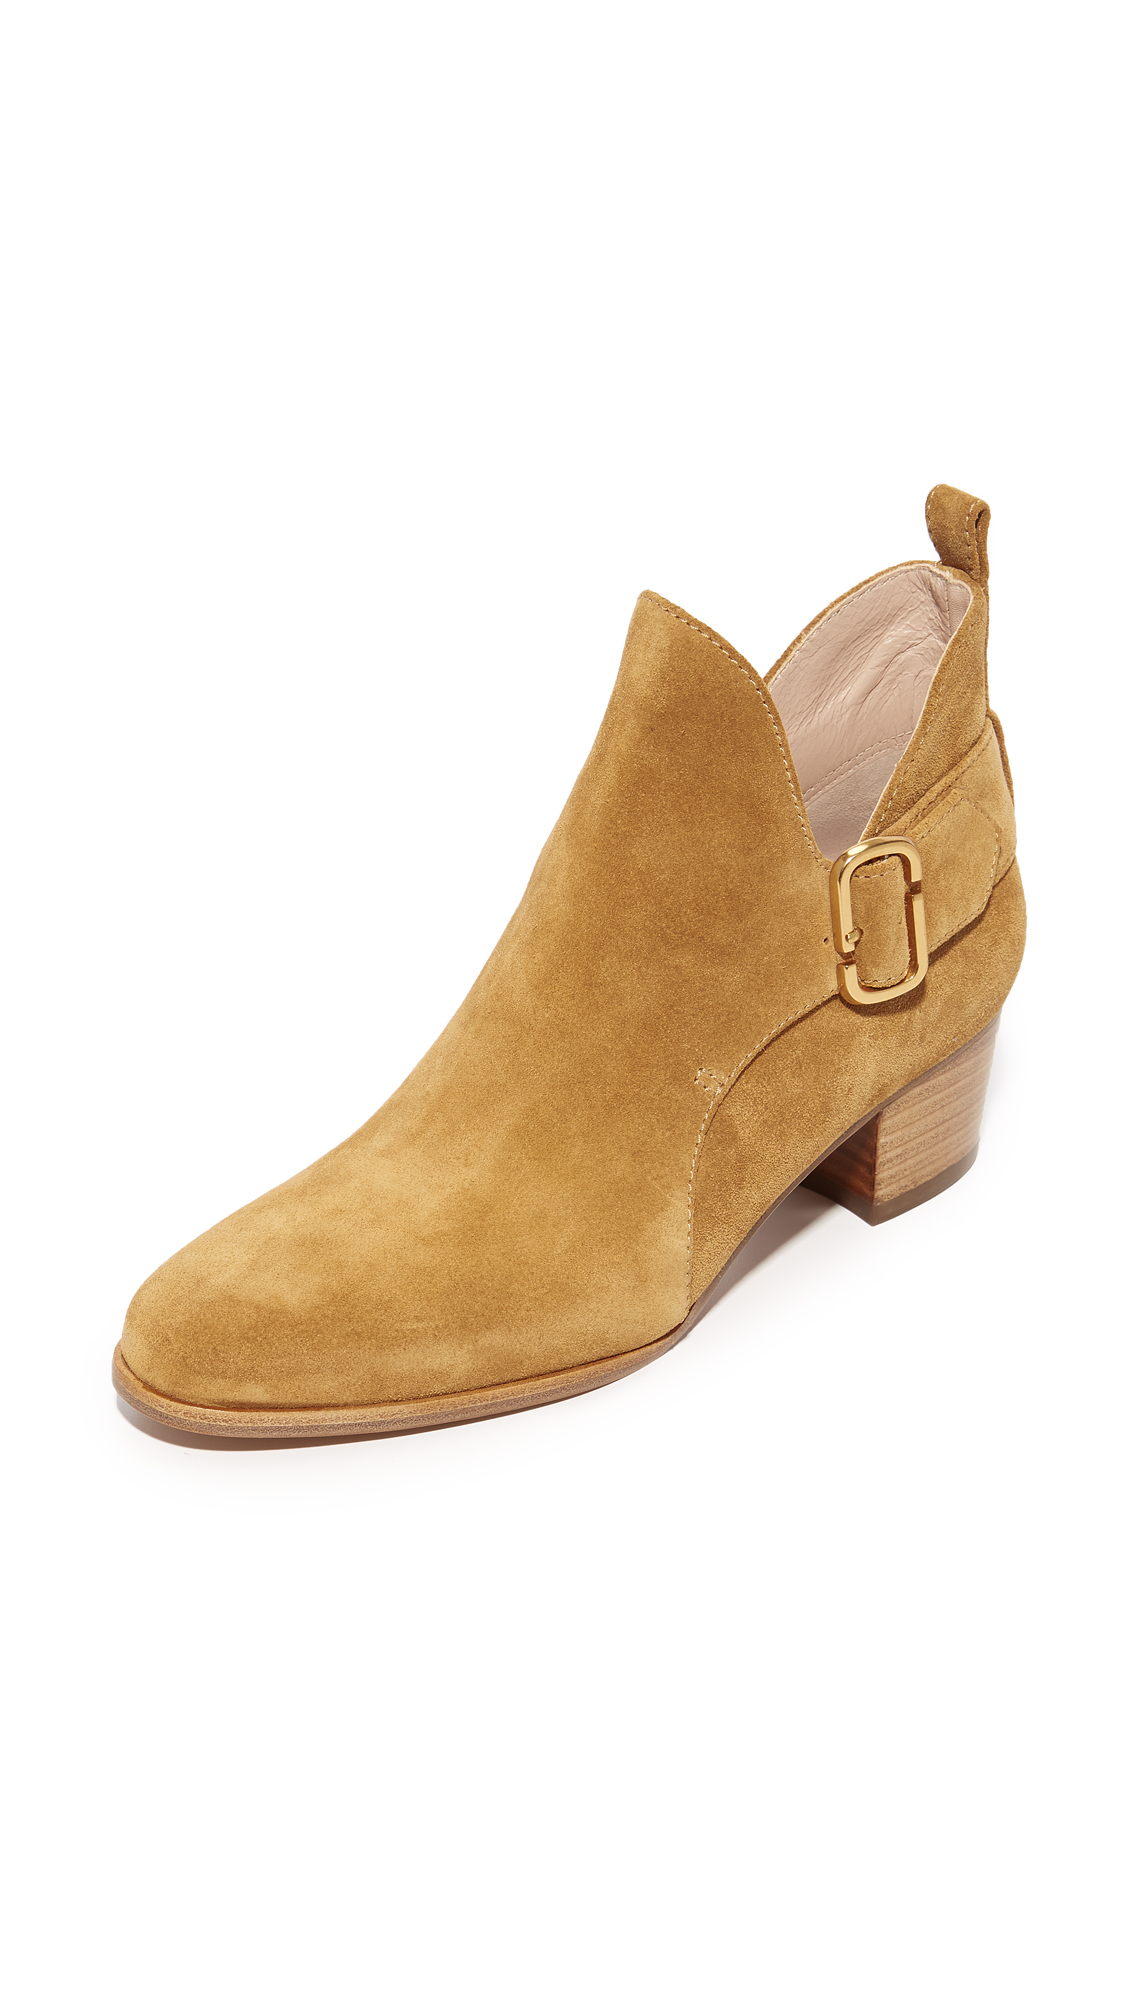 Marc Jacobs Ginger Interlock Ankle Booties - Camel